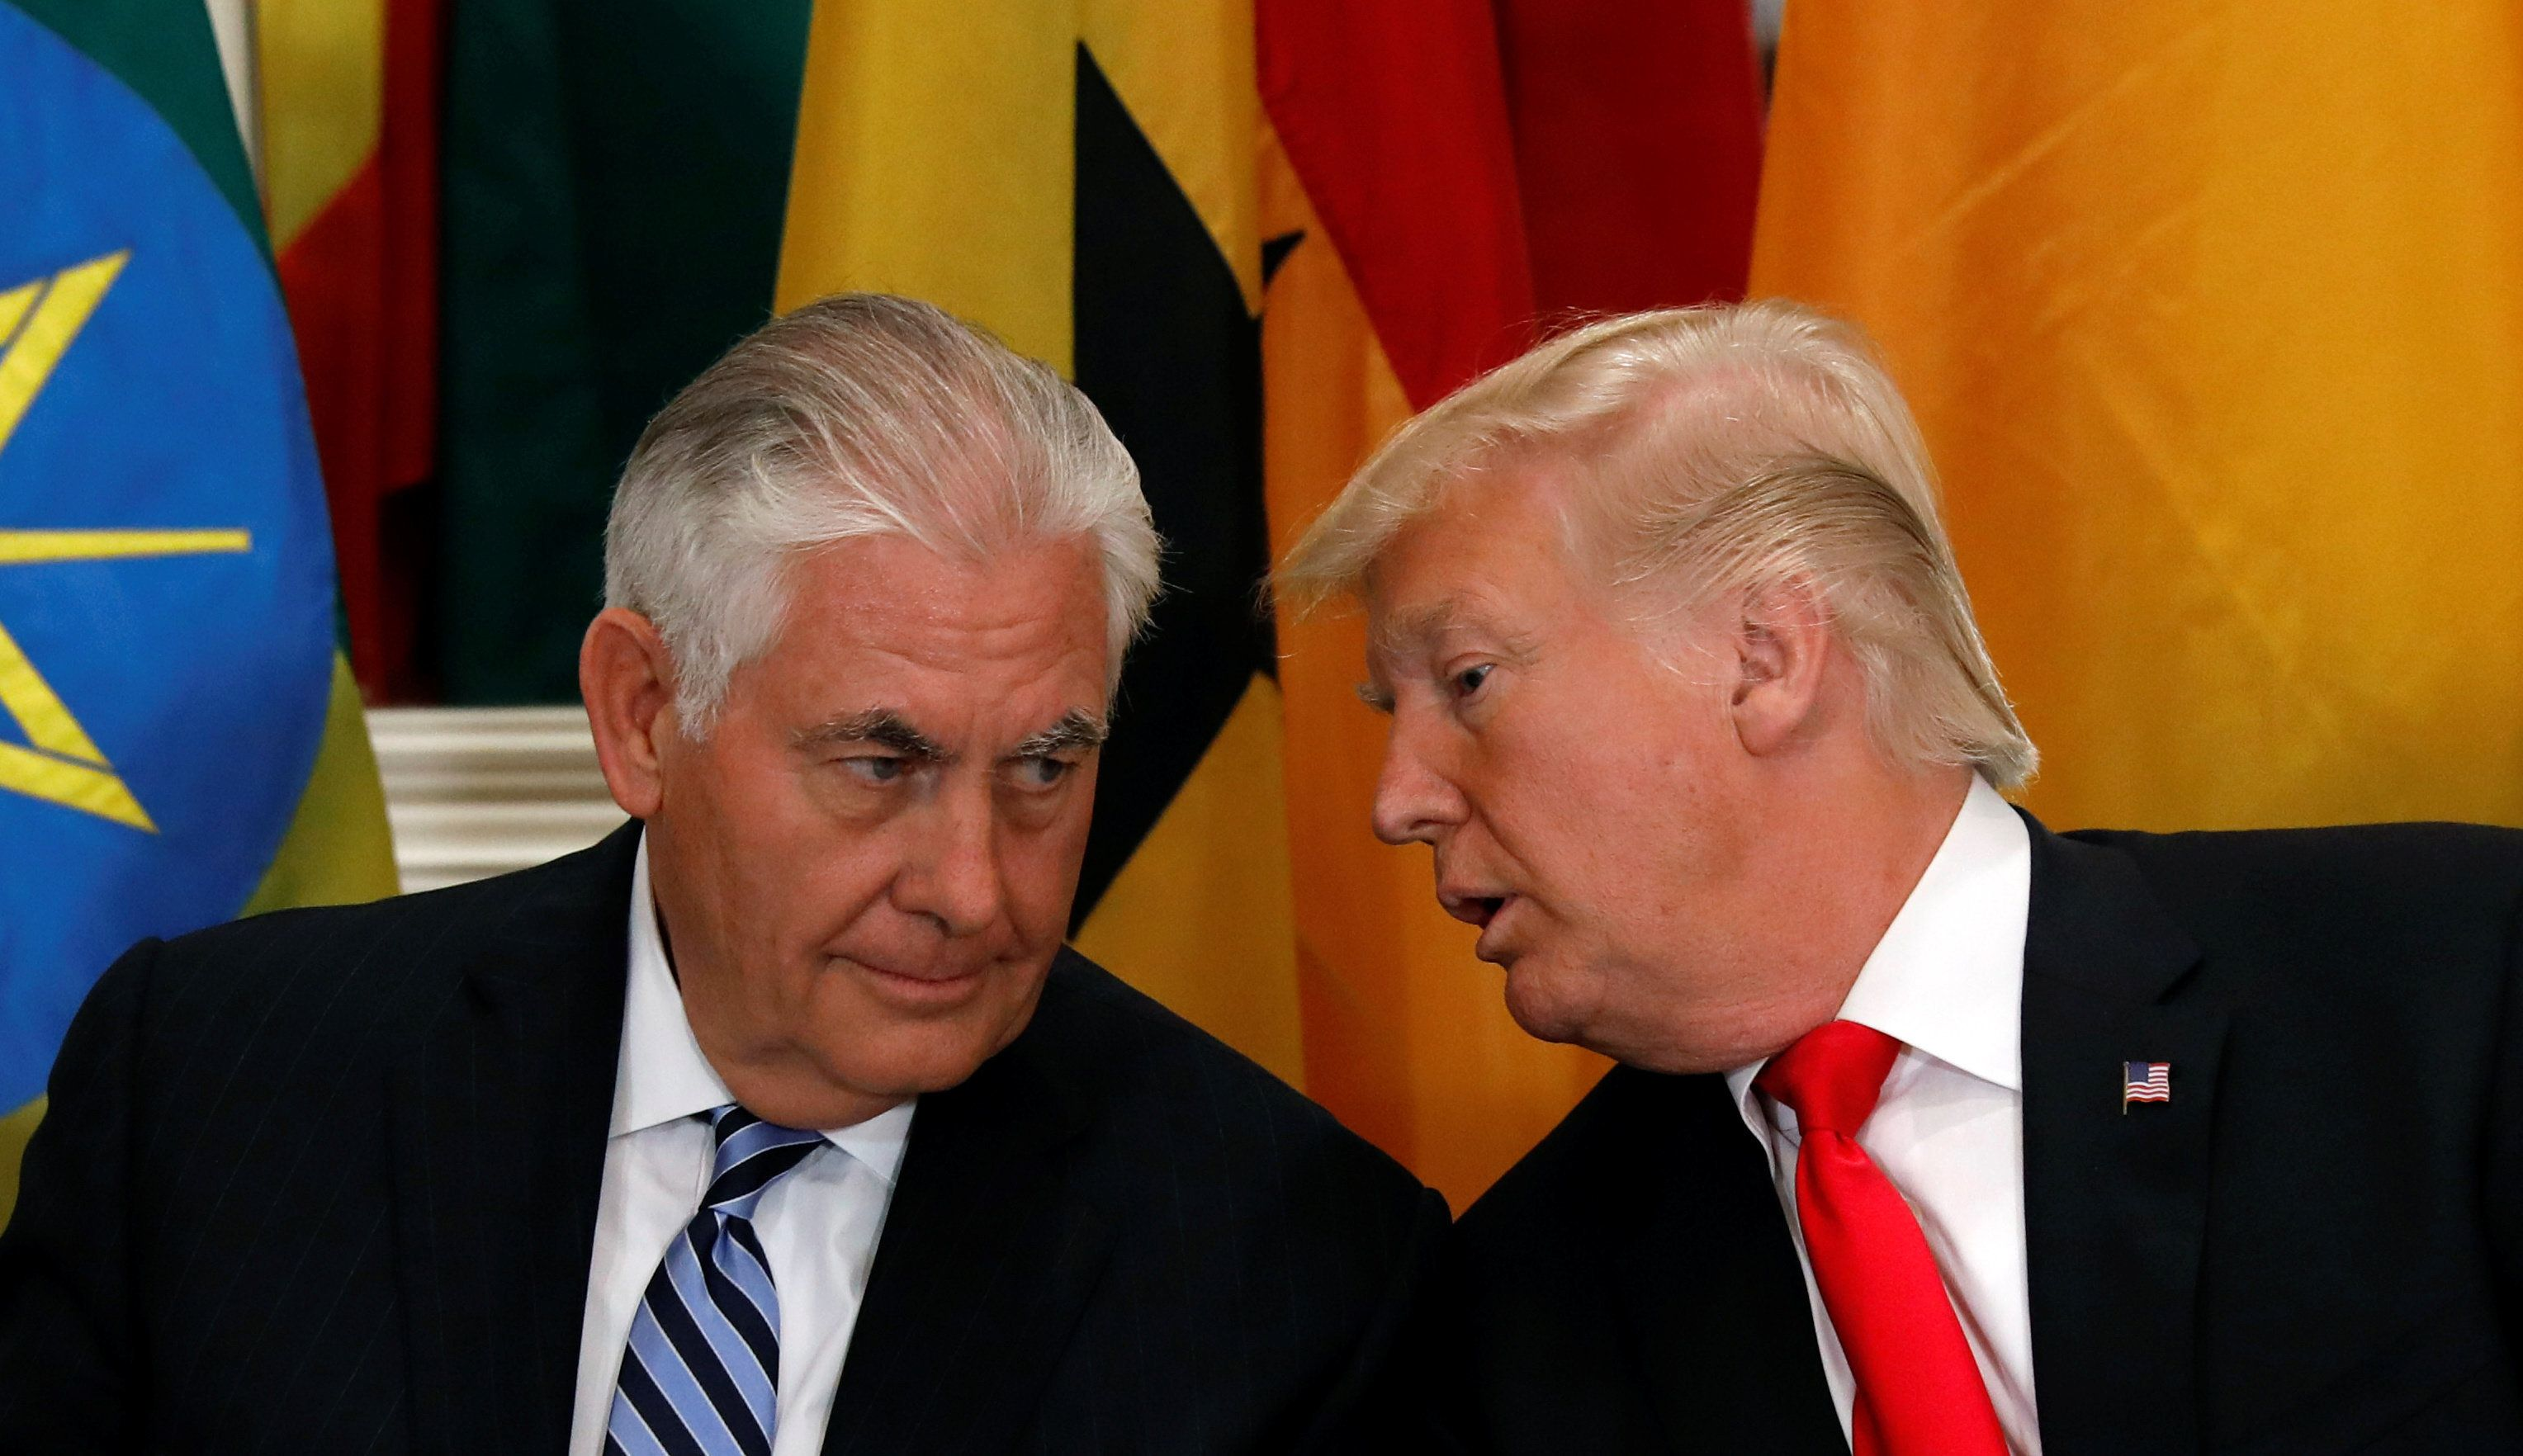 Rex Tillerson Once Again Does Not Deny Calling President Trump a Moron